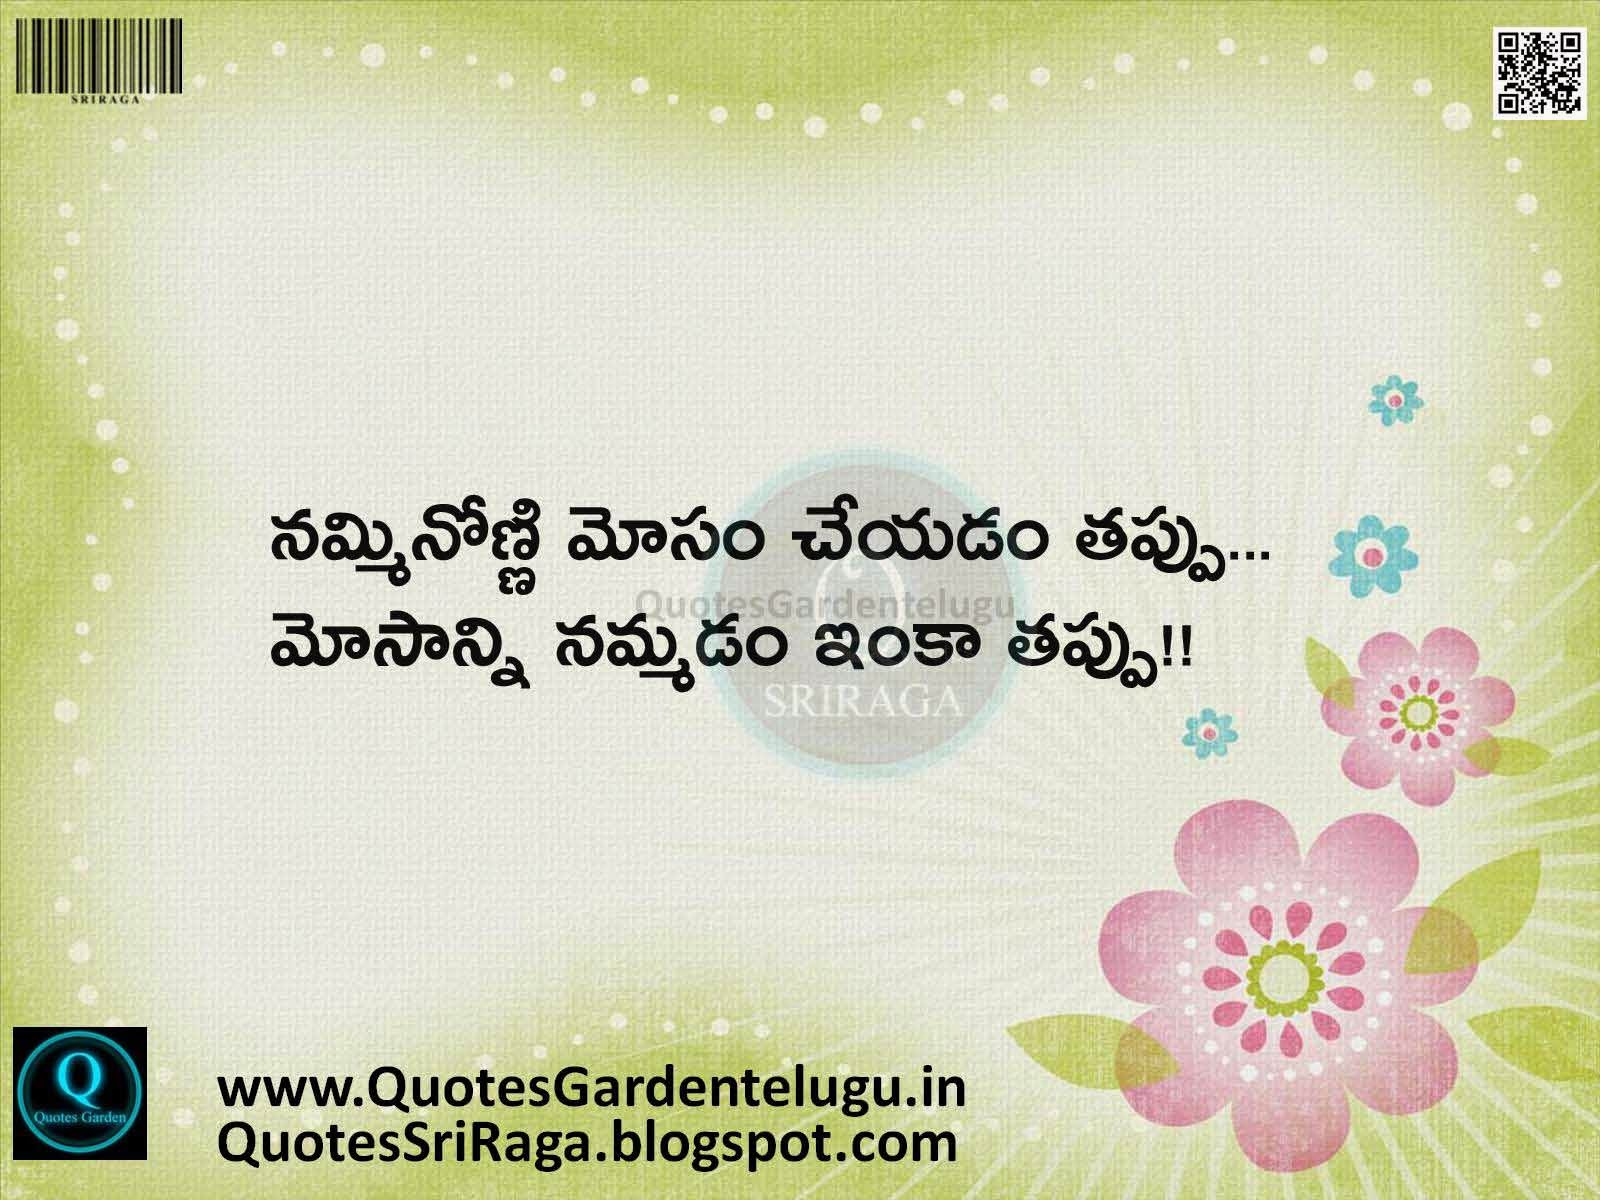 Nice Telugu Quotes Nice Telugu images Nice telugu wallpapers images